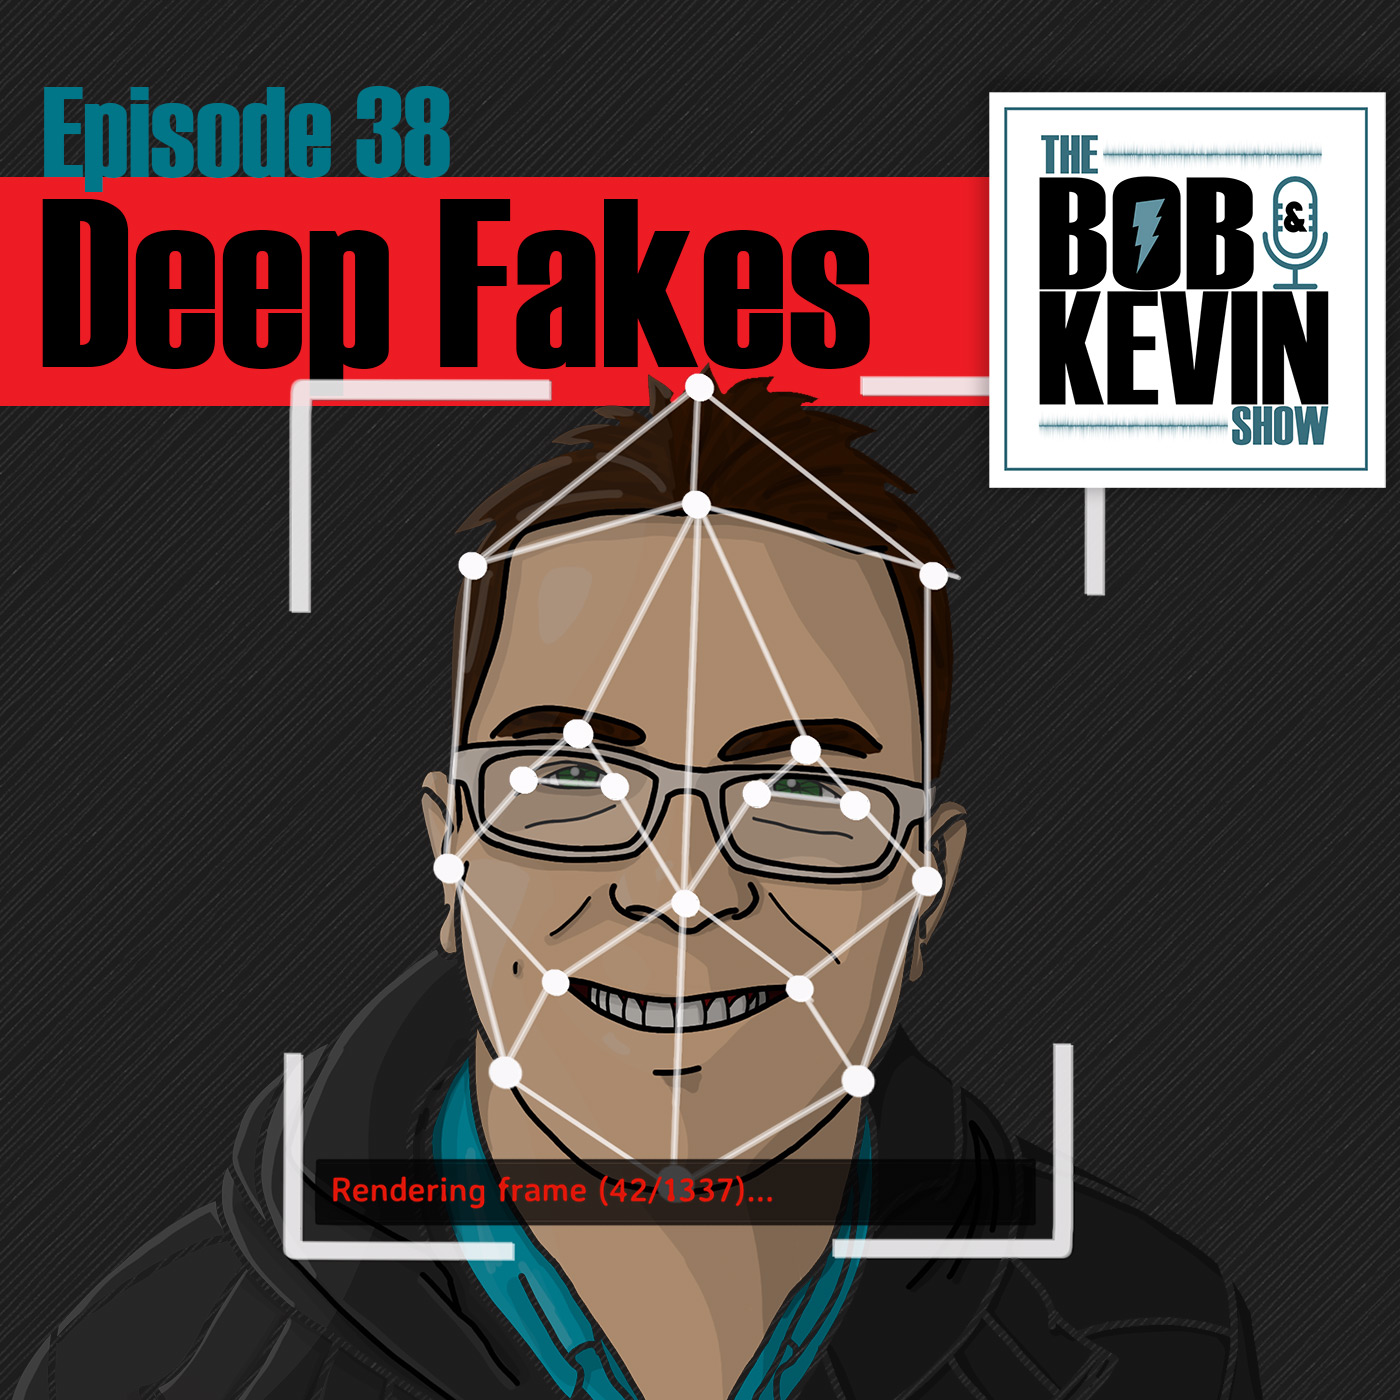 Ep. 038 - Deep Fakes from Jordan Peele, Bill Hader, Nancy Pelosi and Joe Rogan